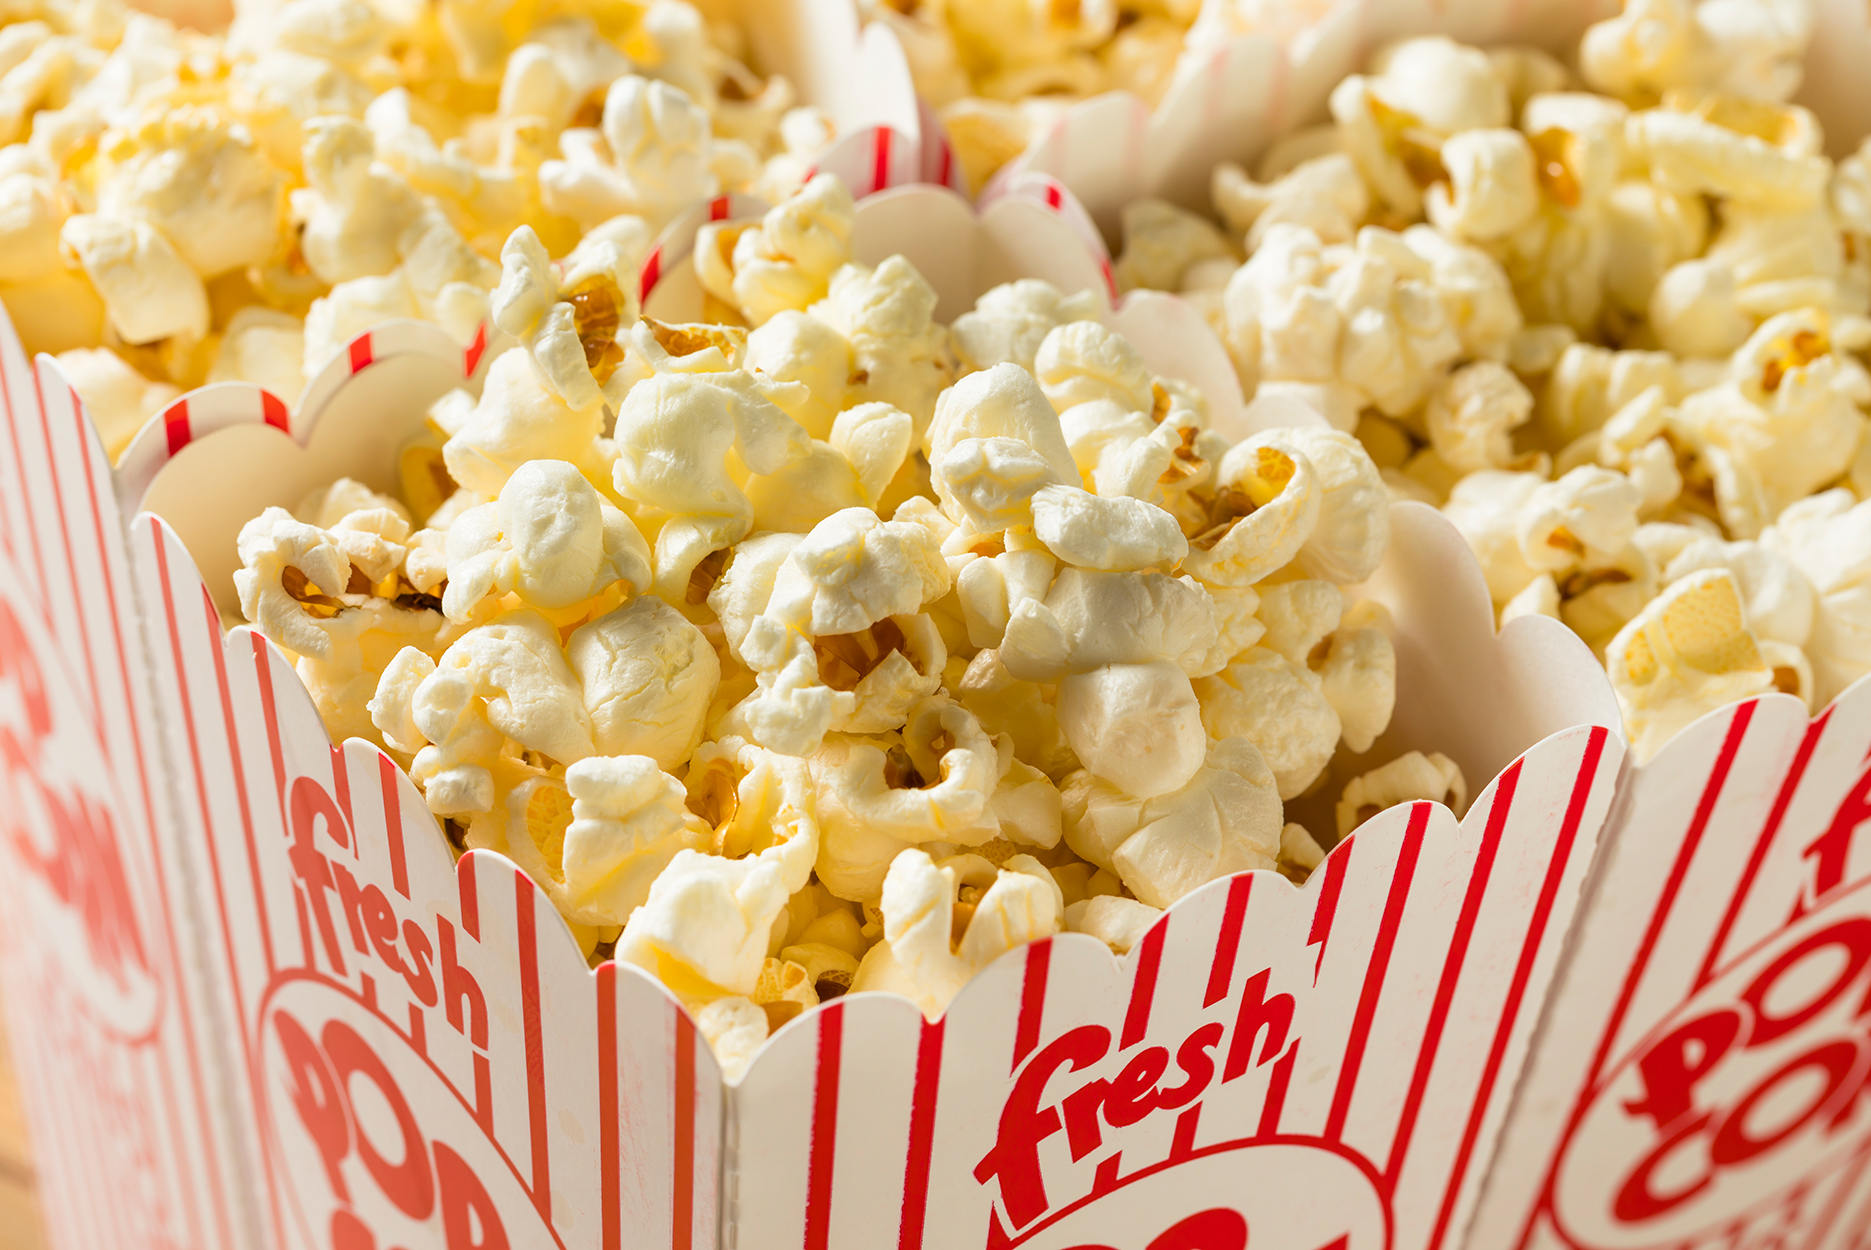 Movie Theaters Selling Popcorn and Snacks To-Go